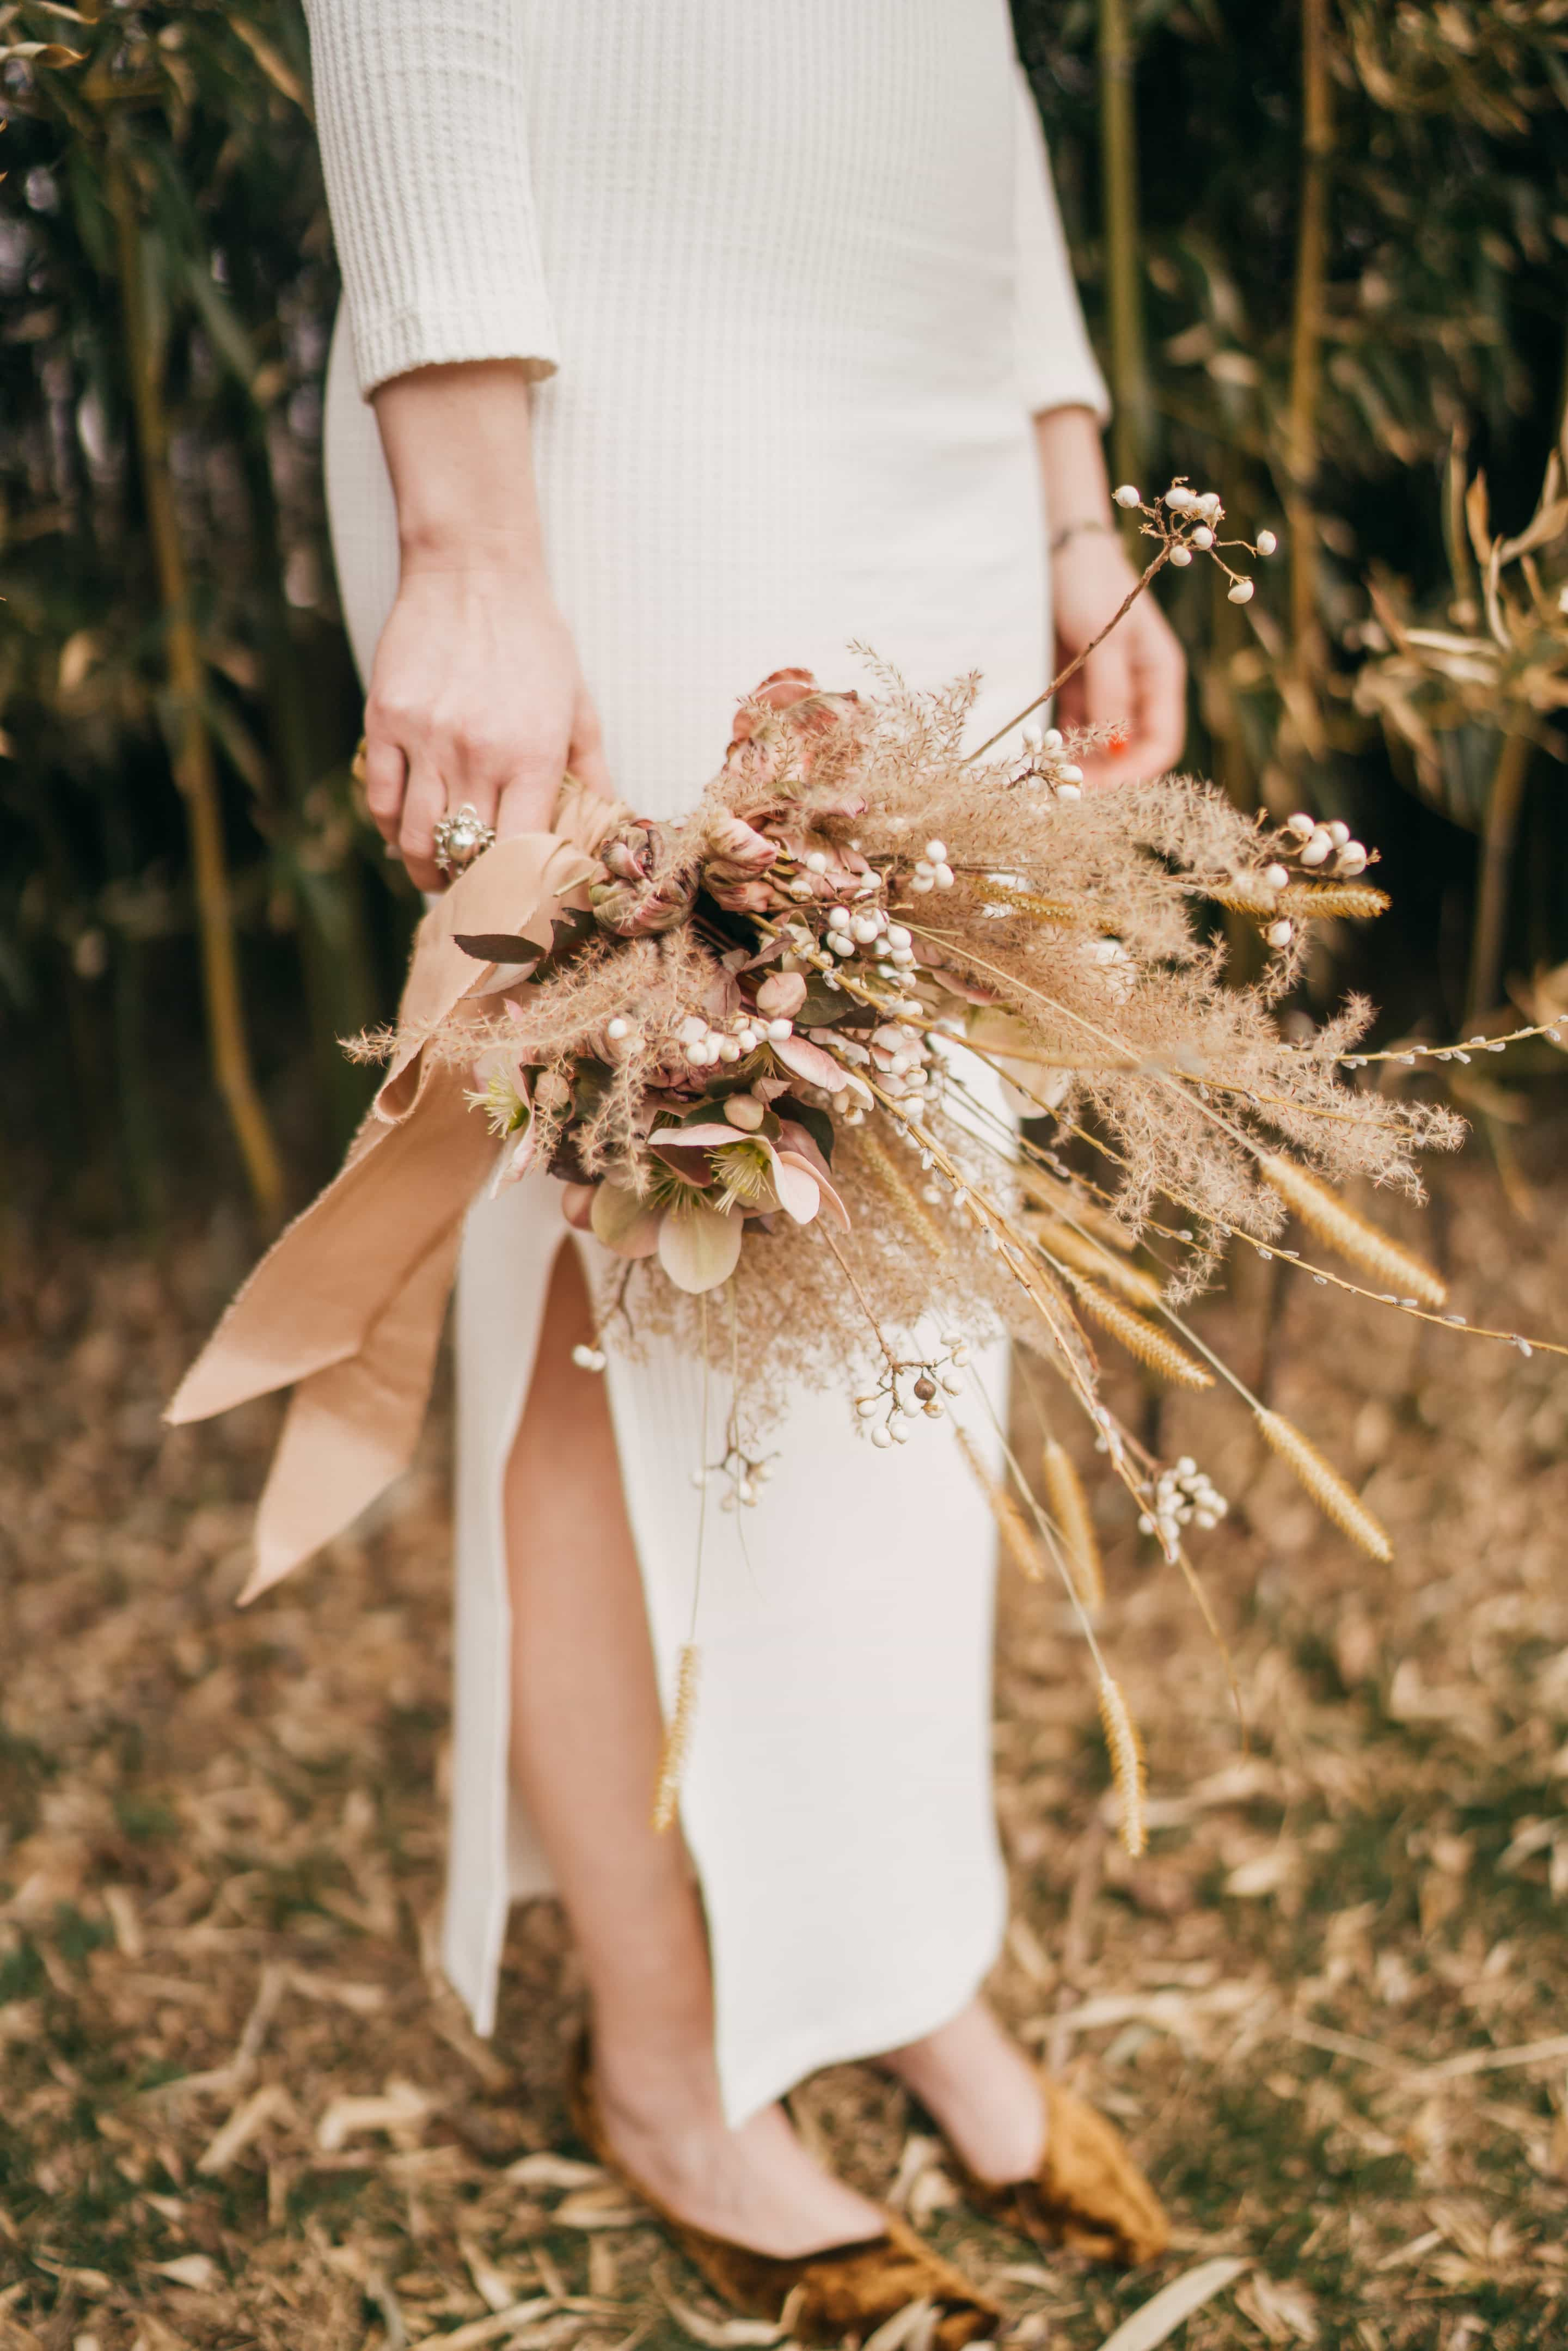 Bride holds dry brown grass and weeds bouquet.